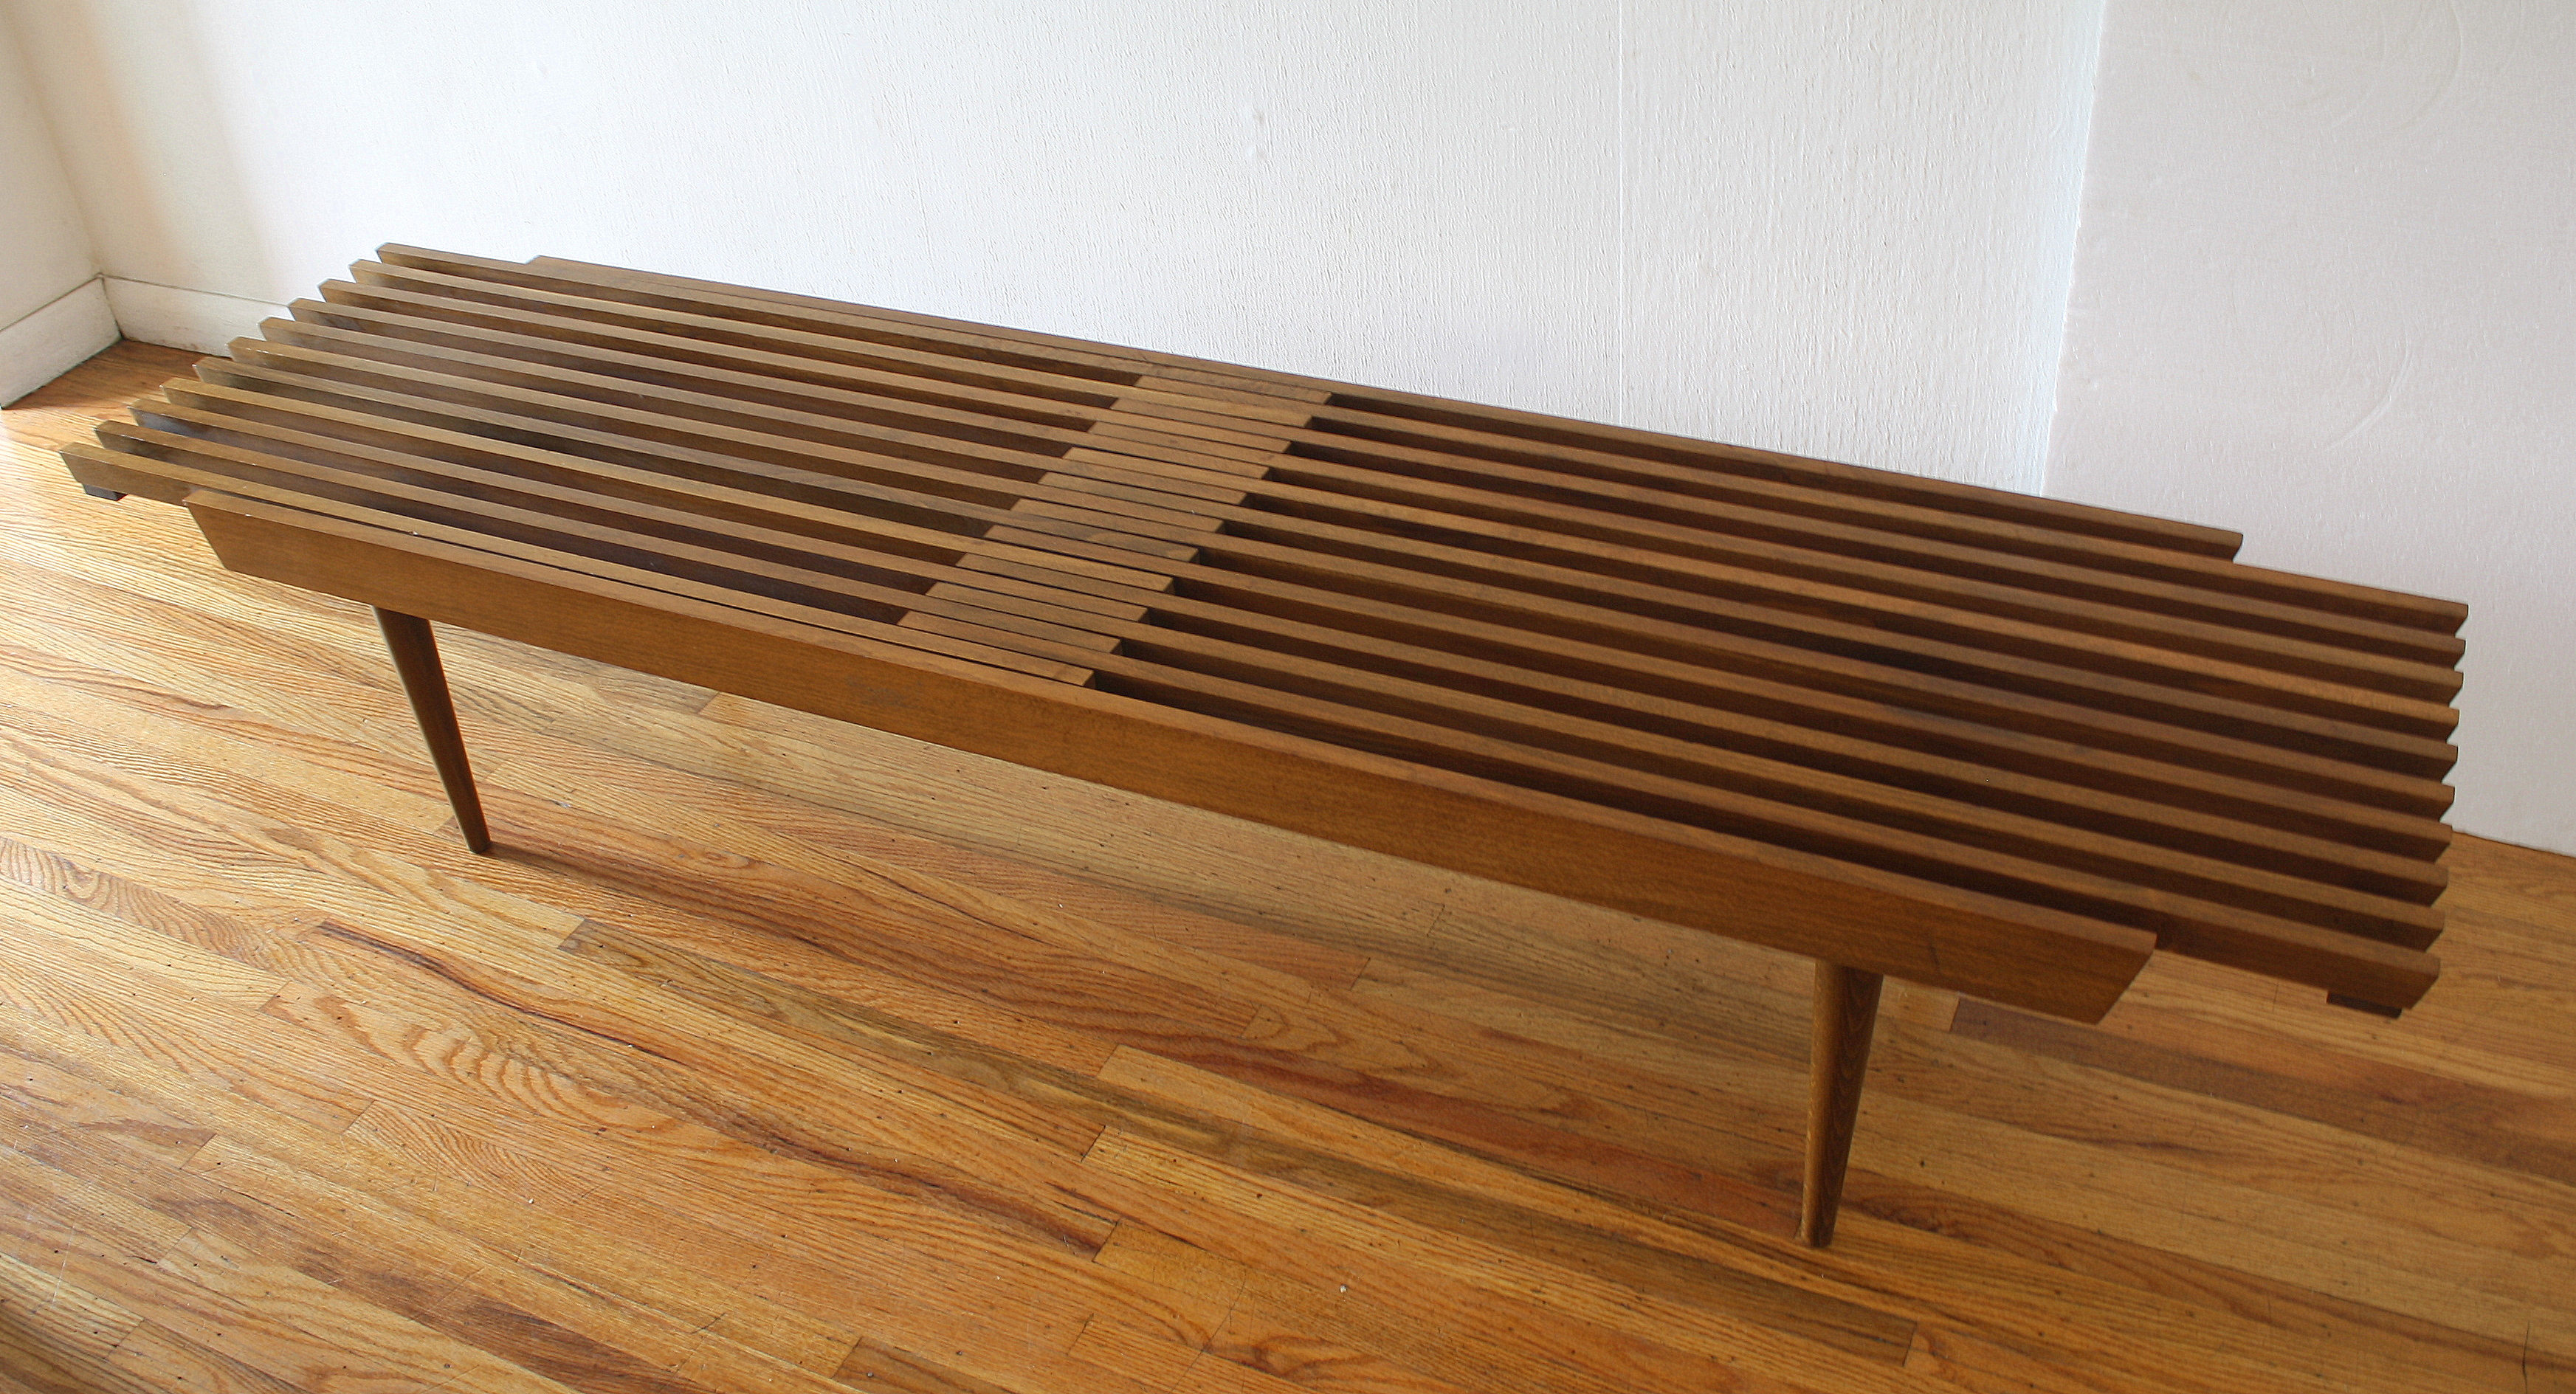 mcm slatted extendong table bench 3.JPG